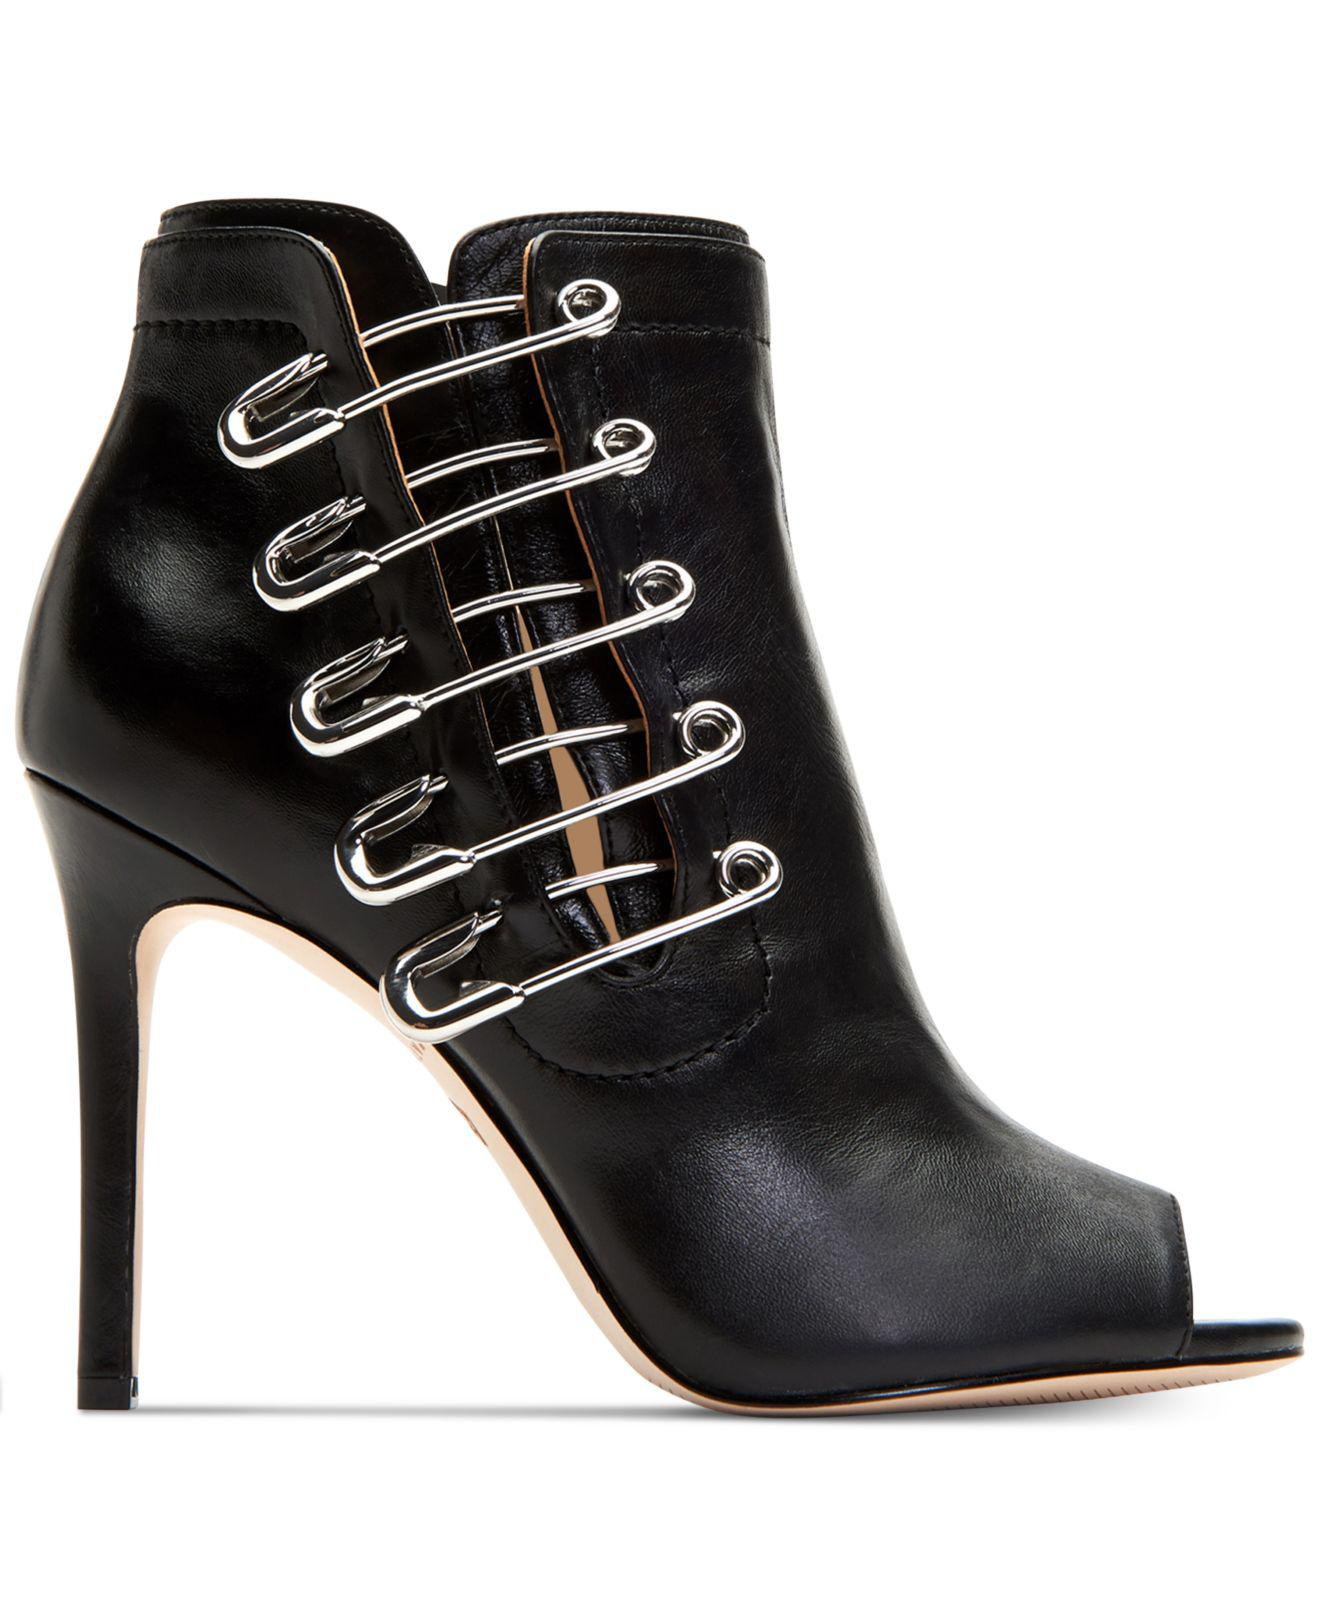 ab25bf2a2bdec Lyst - Katy Perry Unity Peep-toe Booties in Black